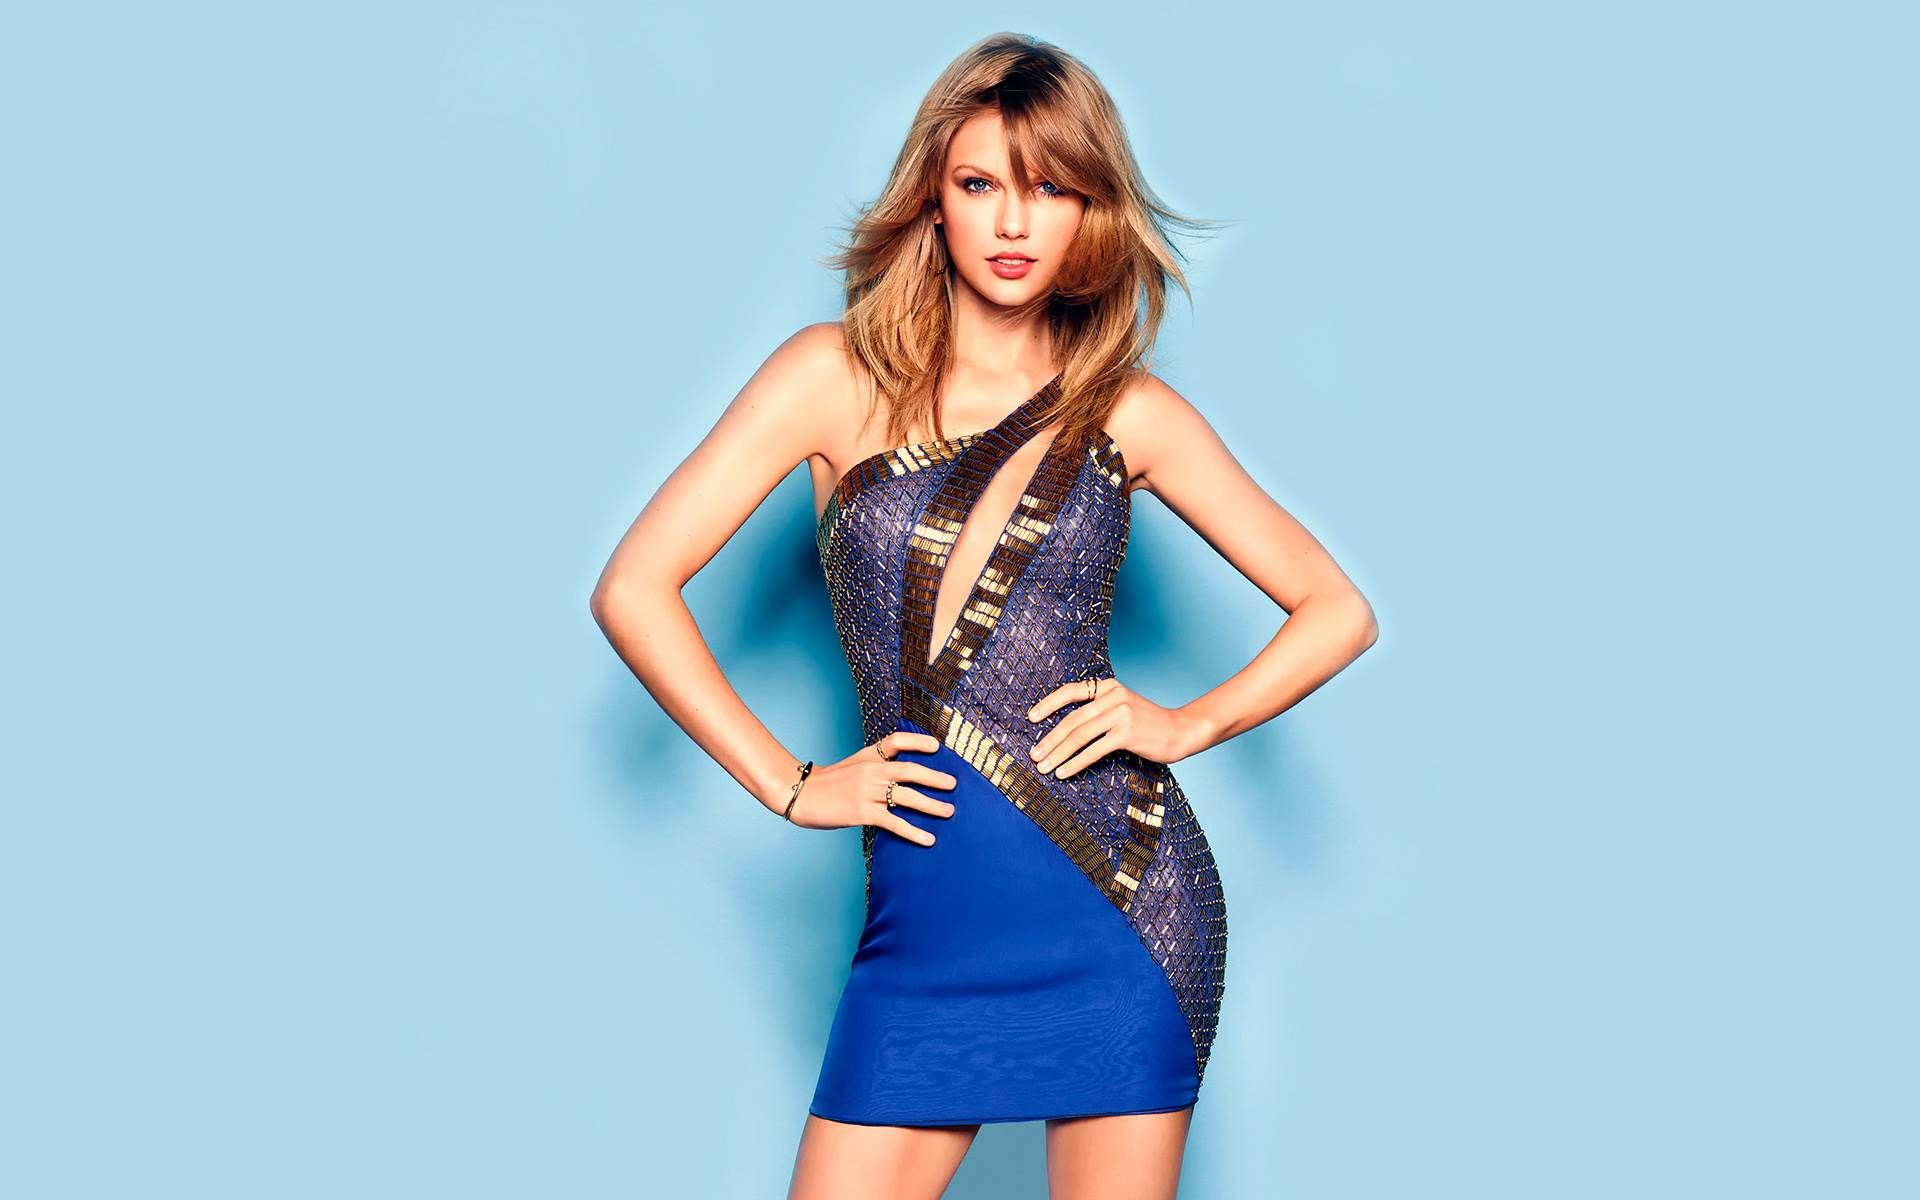 Taylor Swift  Wallpapers  HD Wallpapers 1920×1200 Taylor Swift Image | Adorable Wallpapers